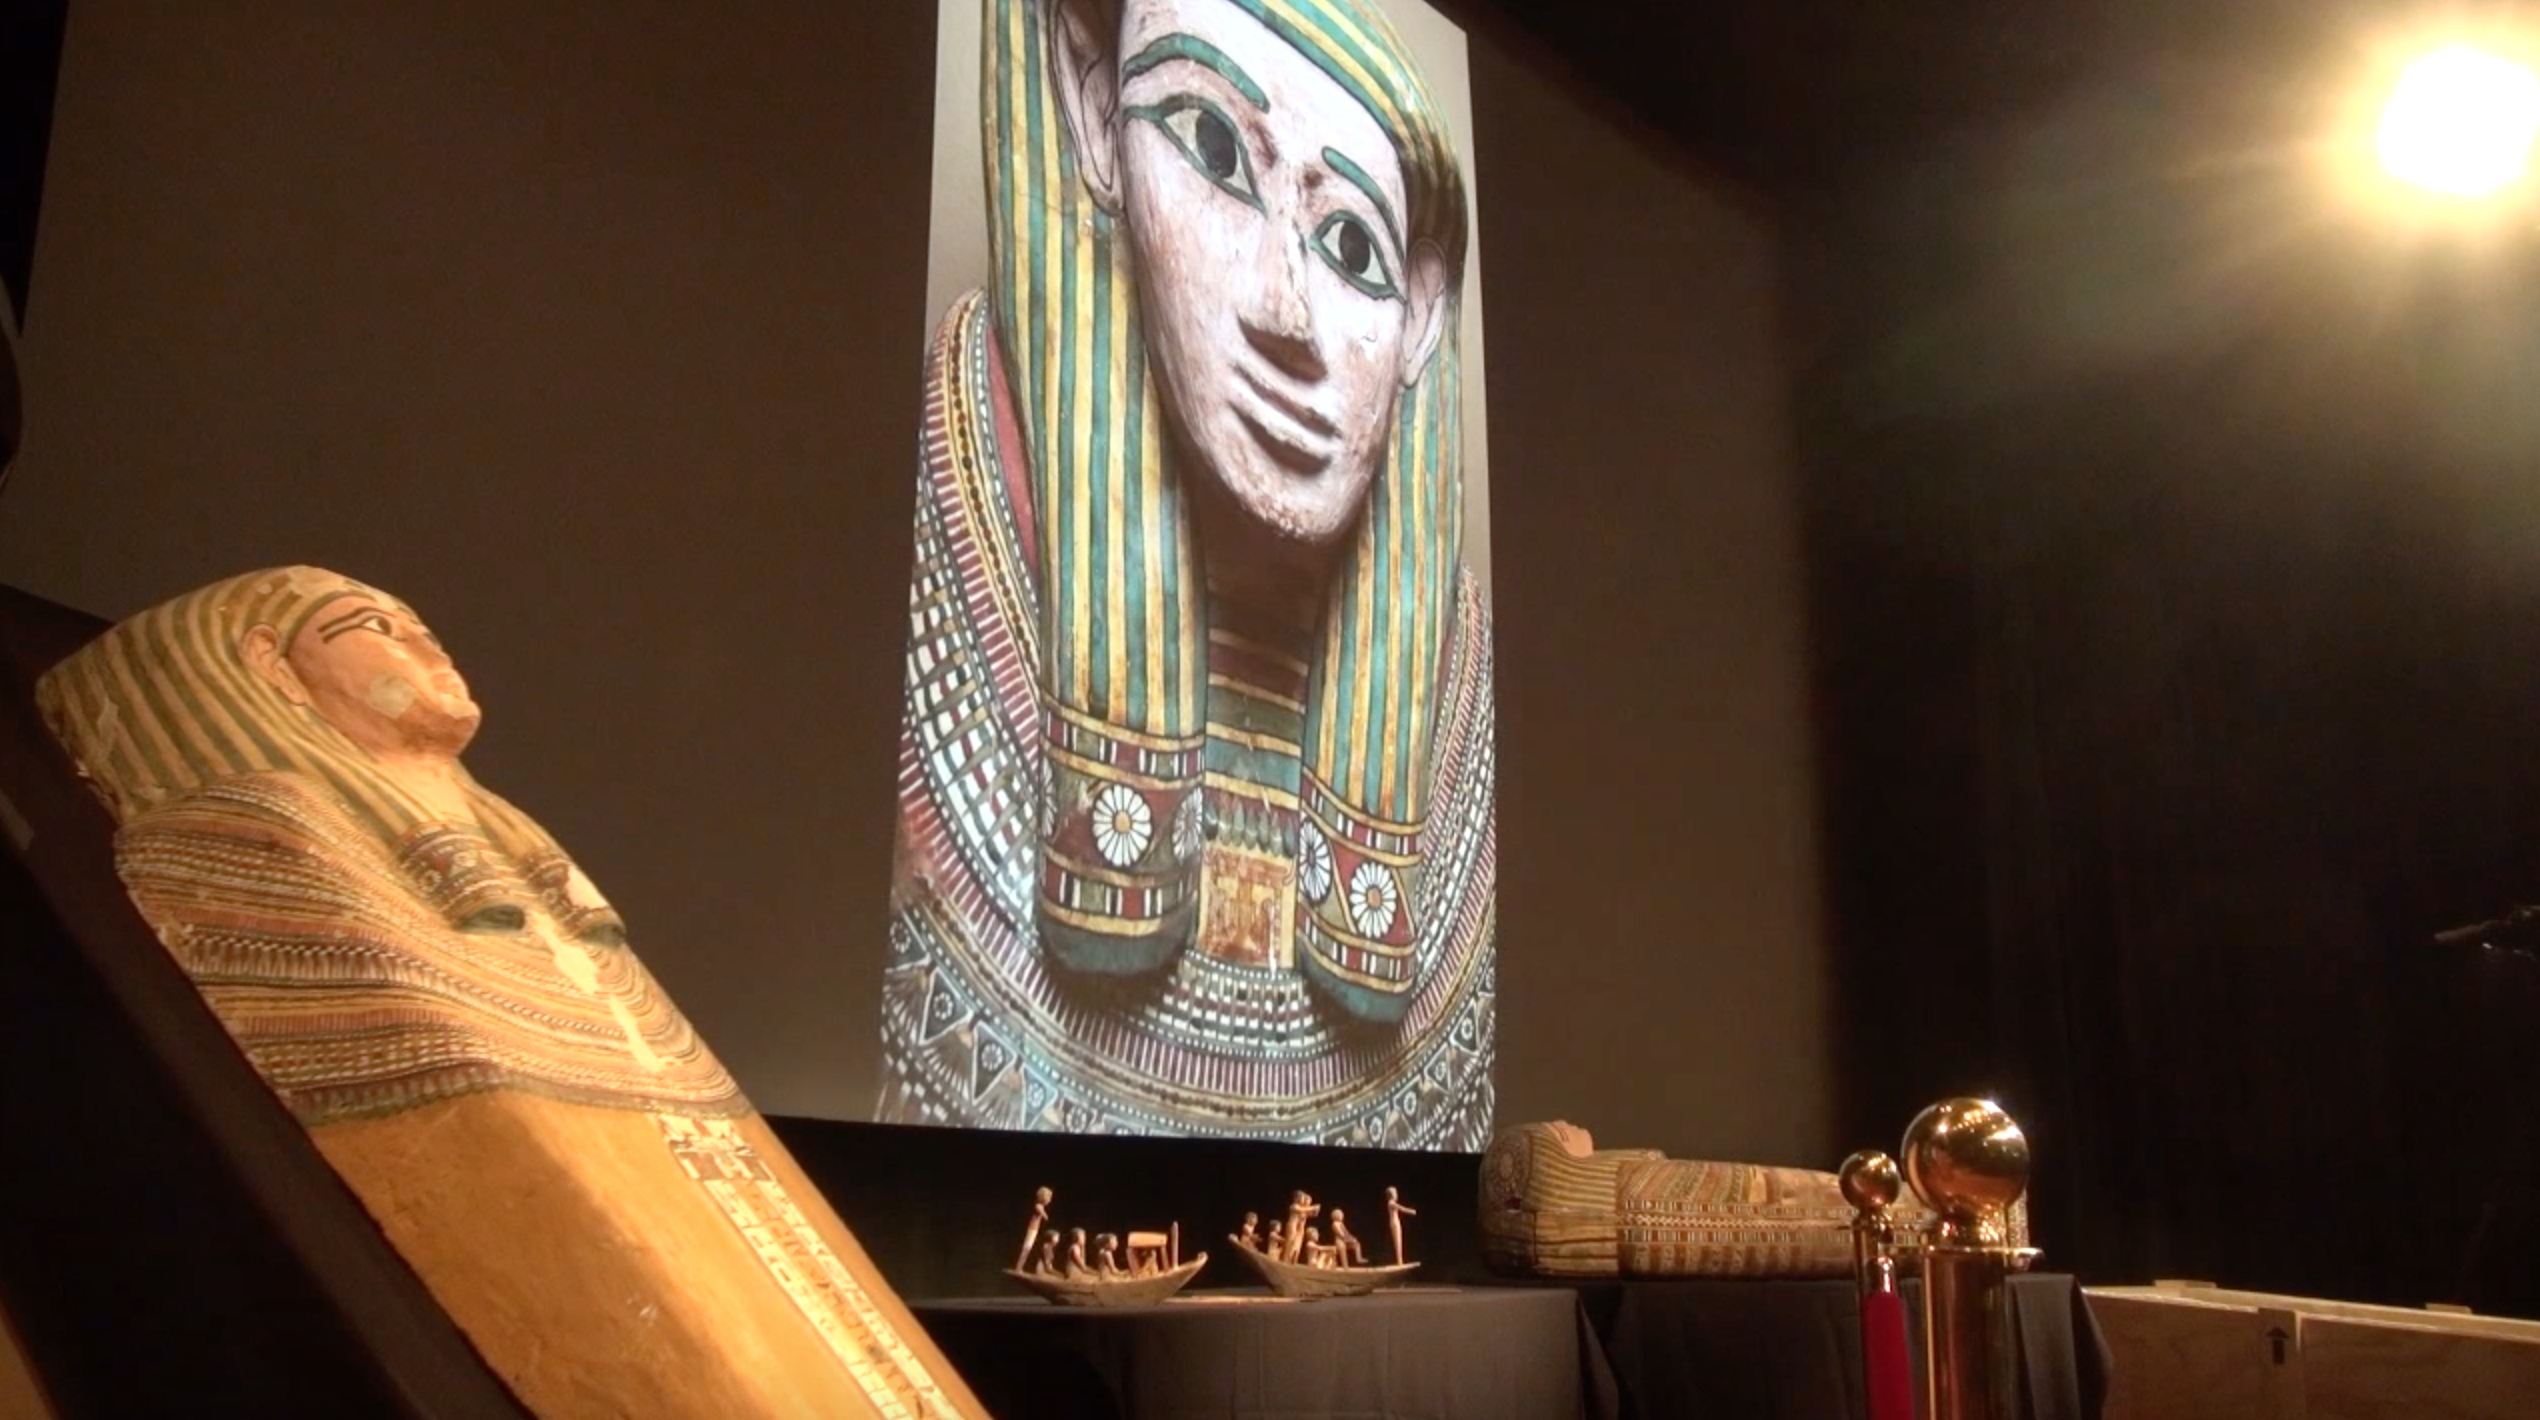 Sarcophagus found in Brooklyn garage is heading home to Egypt